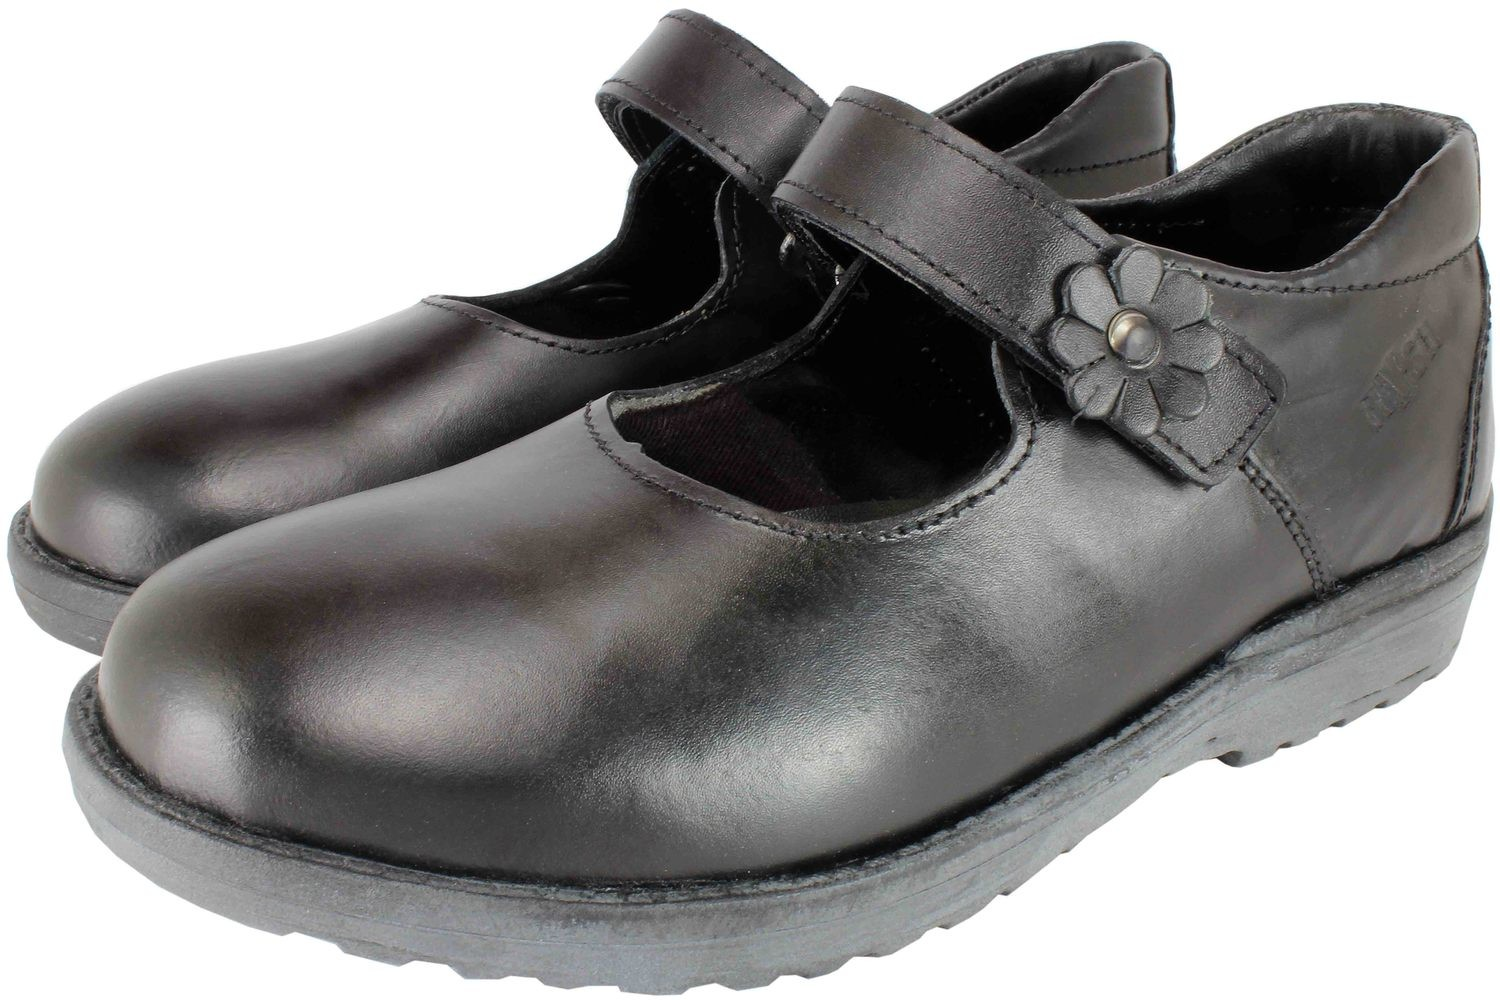 Girls Shoes Genuine Leather Black - SUGGESTED RETAIL PRICE $30.00 - WHOLESALE PRICE $7 - Minimum purchase 14 - pairs